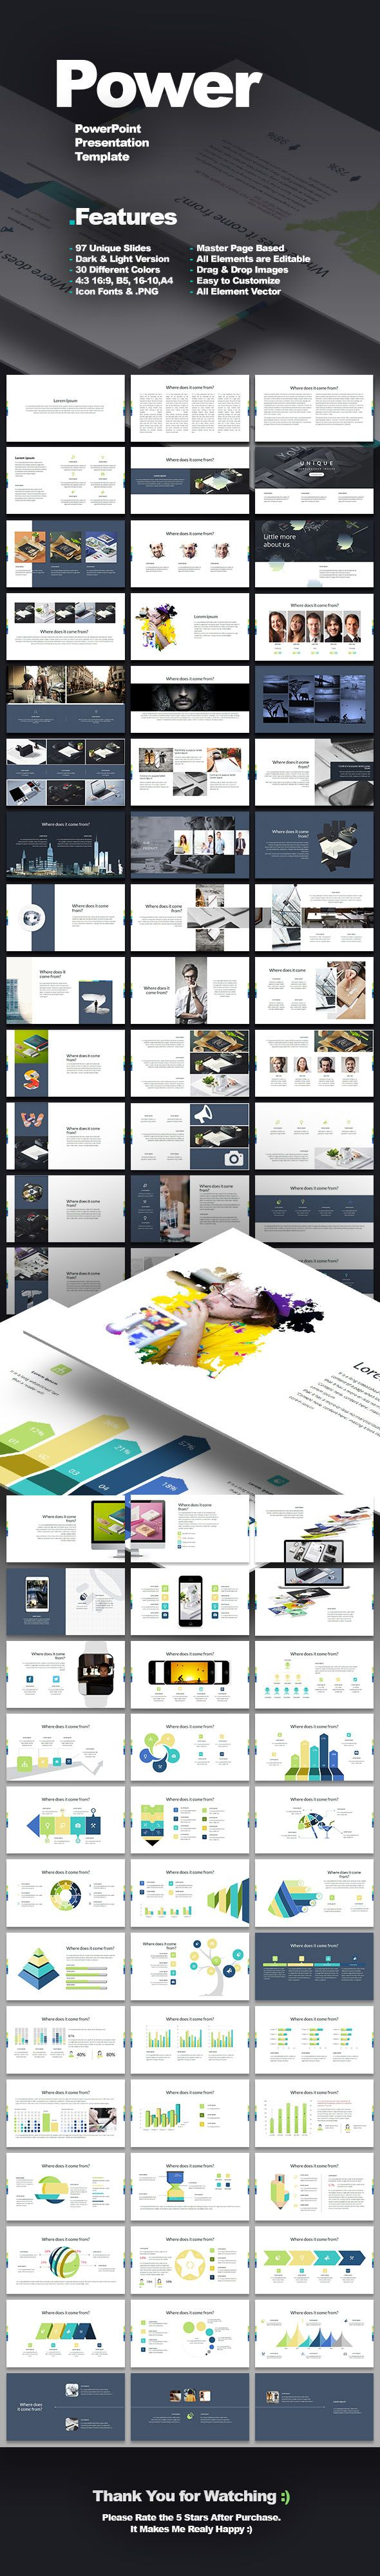 Power - PowerPoint Presentation Template 96+ Unique Slides